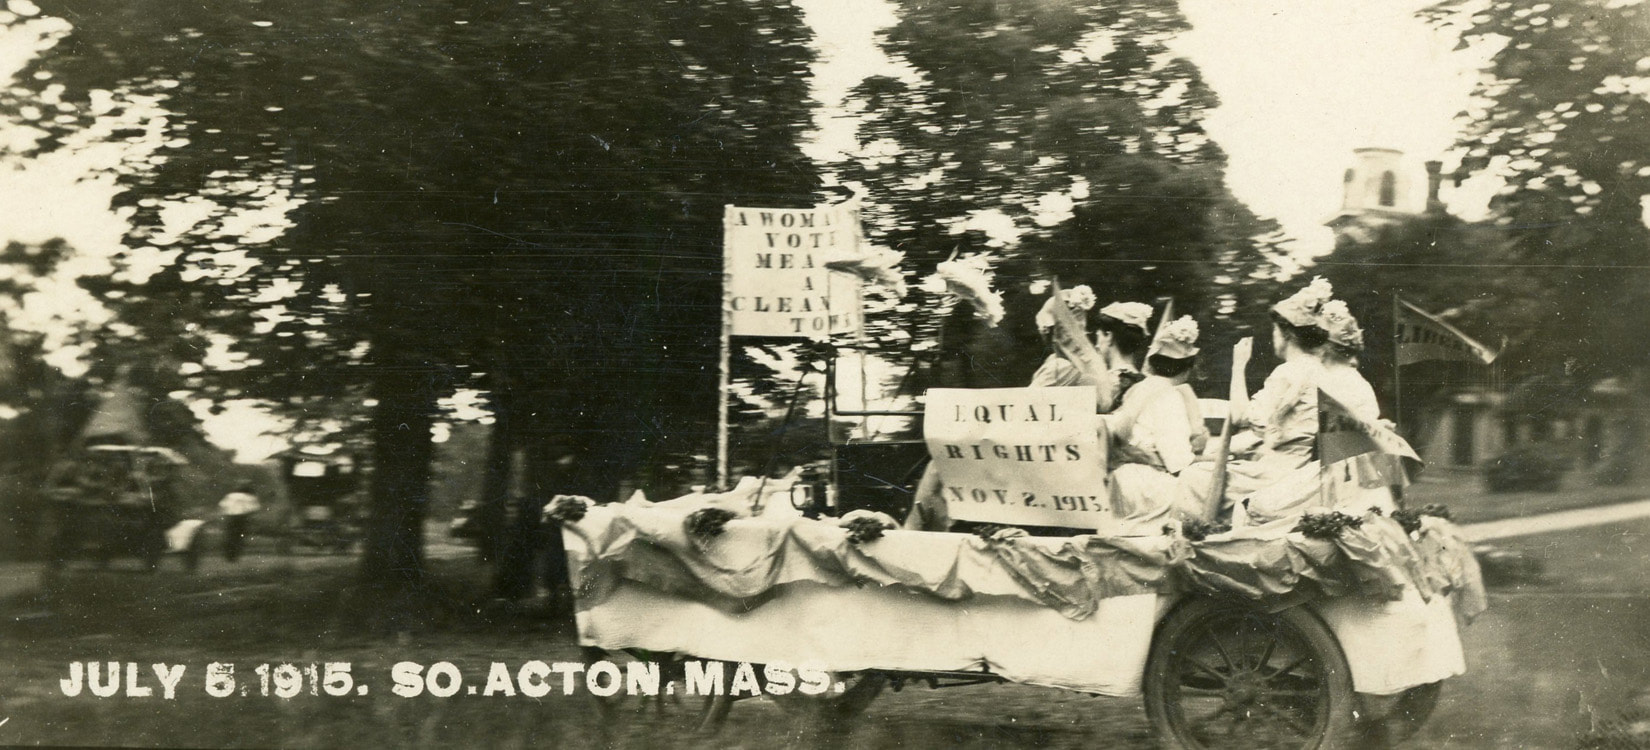 Suffrage Float in South Acton Parade 1915